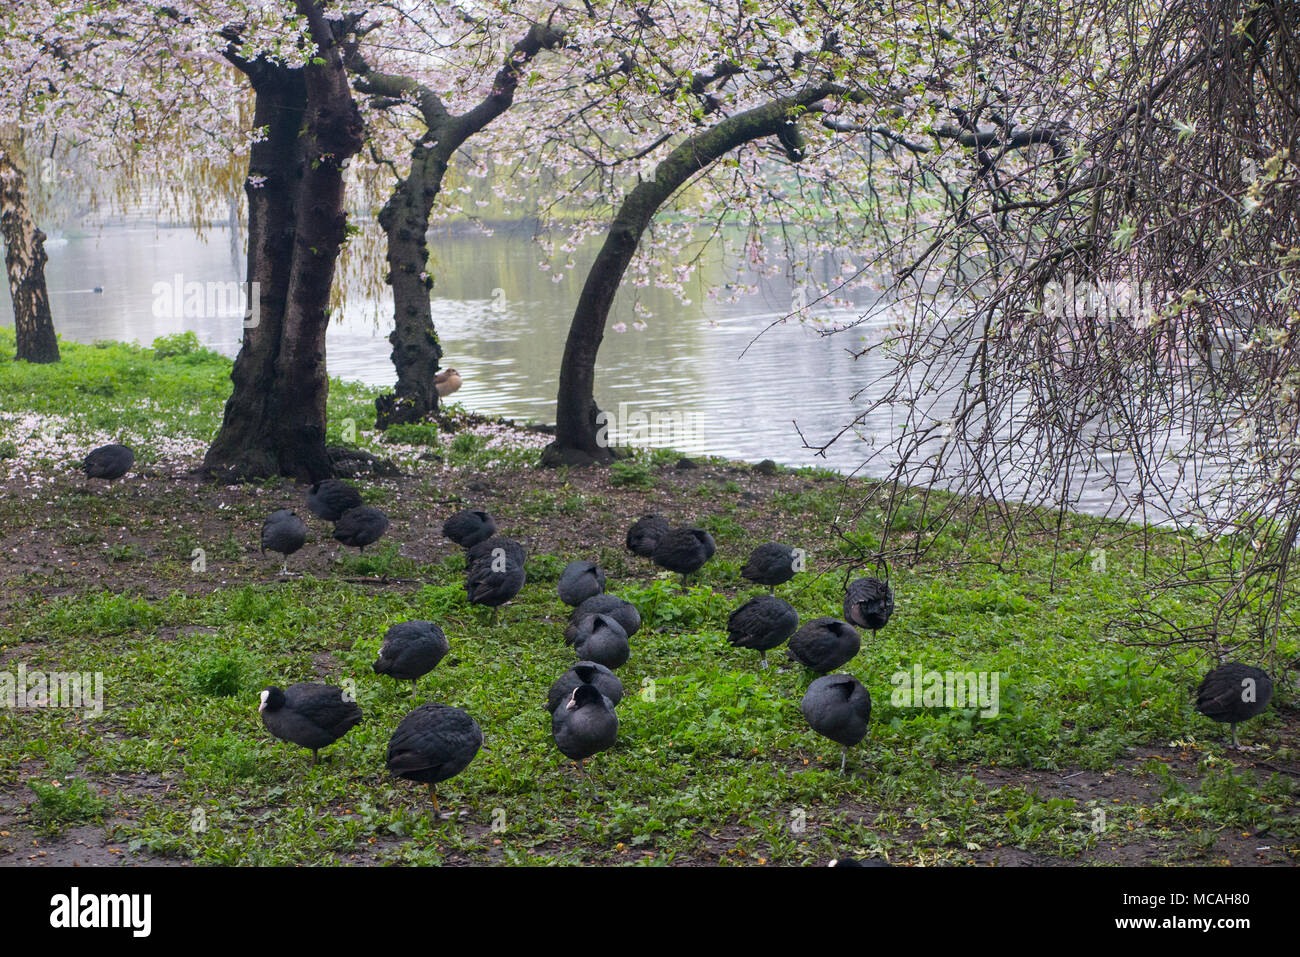 A collection of moorhens and coots in St James Park under a cherry tree in blossom - Stock Image